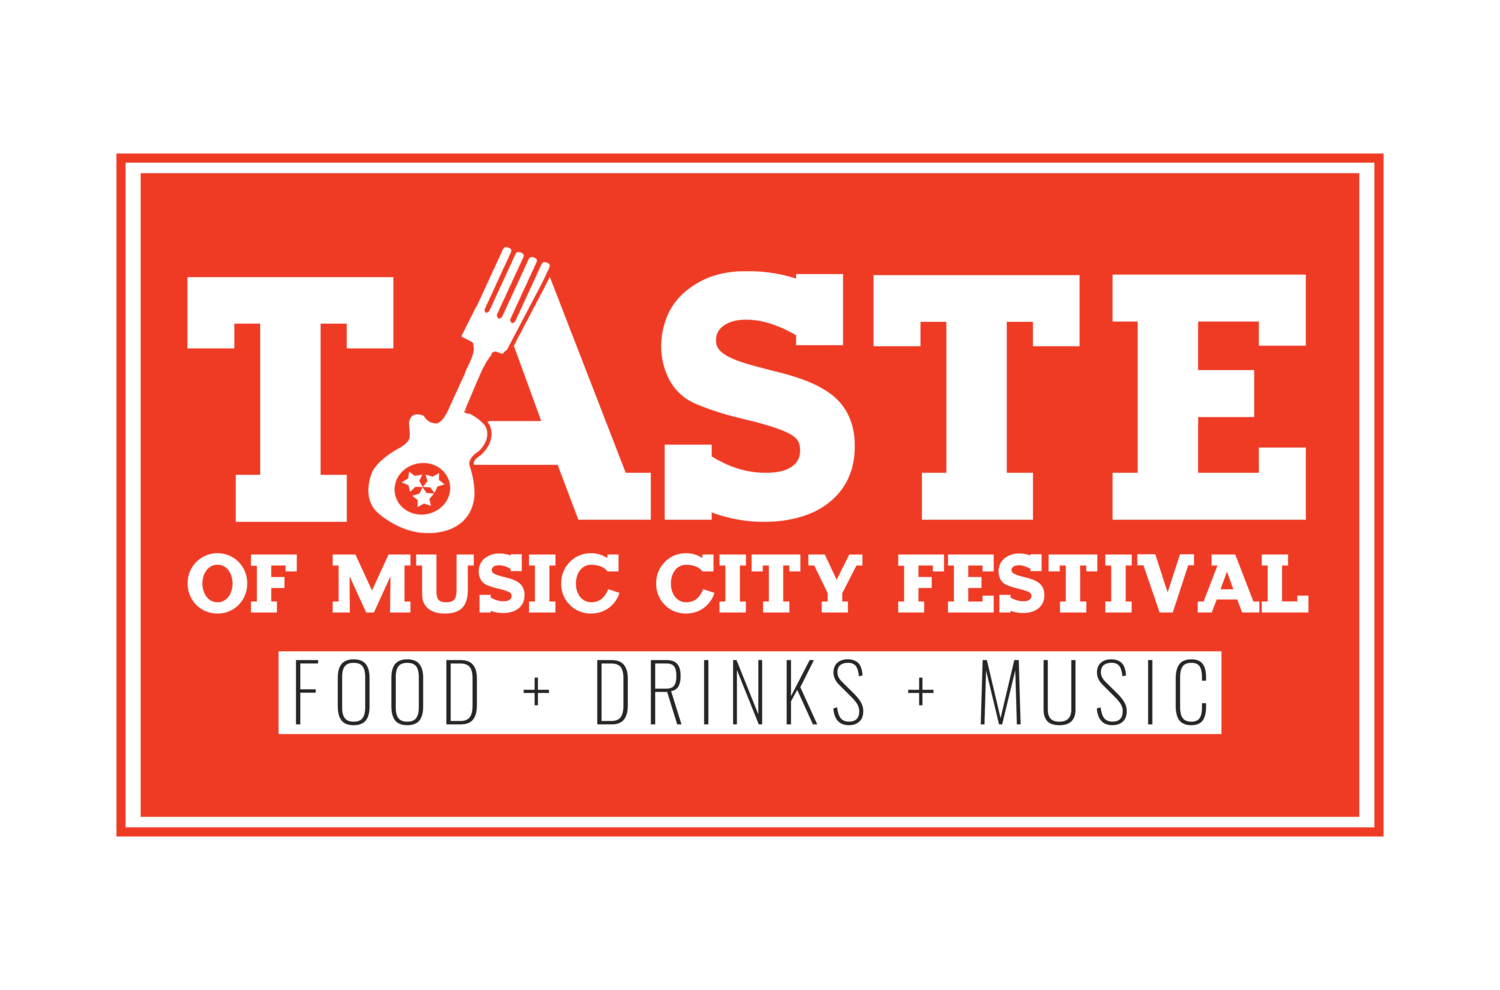 Nissan Taste of Music City